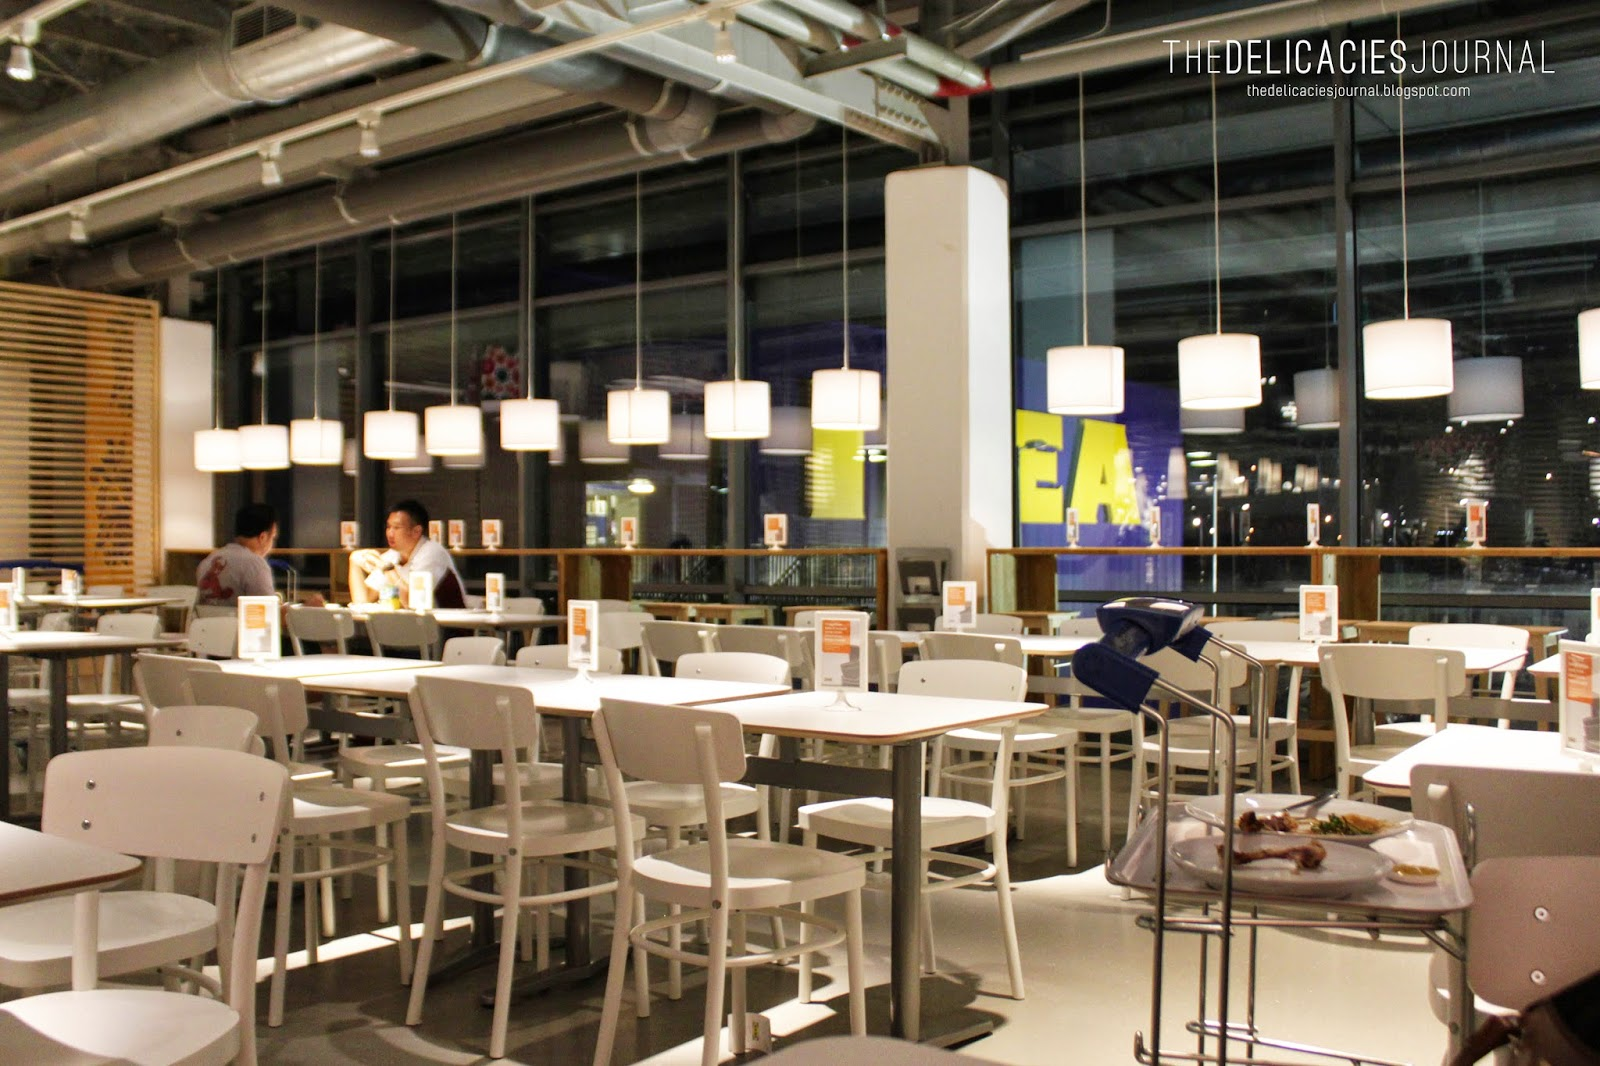 ikea in indonesia Ikea has lost a trademark battle in indonesia after the country's highest court ruled the name was owned by a local company, according to court documents released this week the swedish .